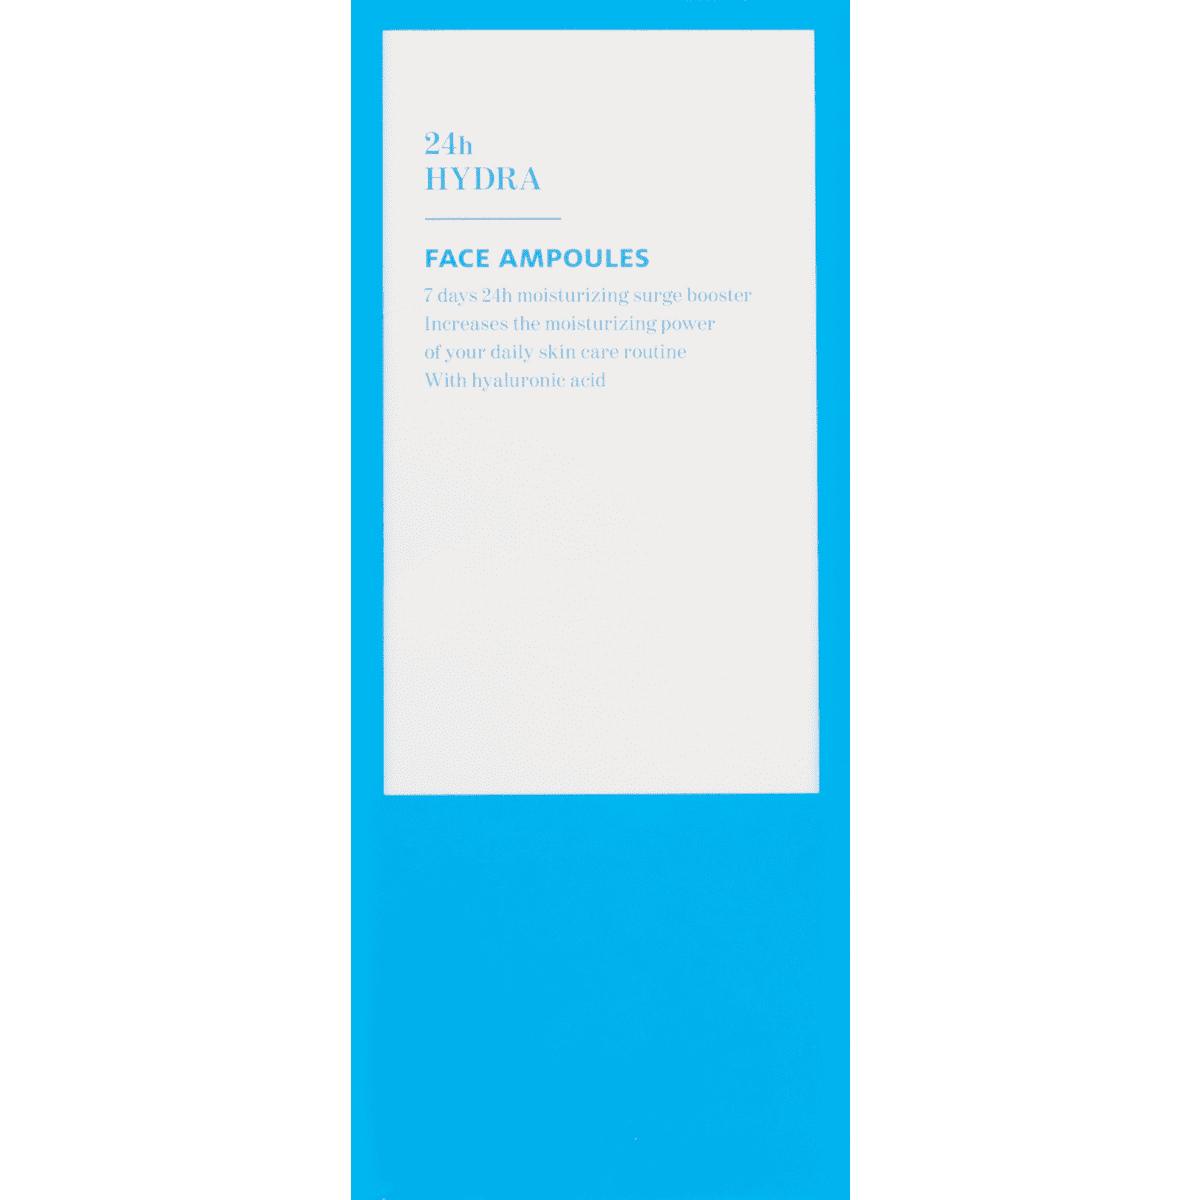 Etos 24H Hydra Face Ampoules